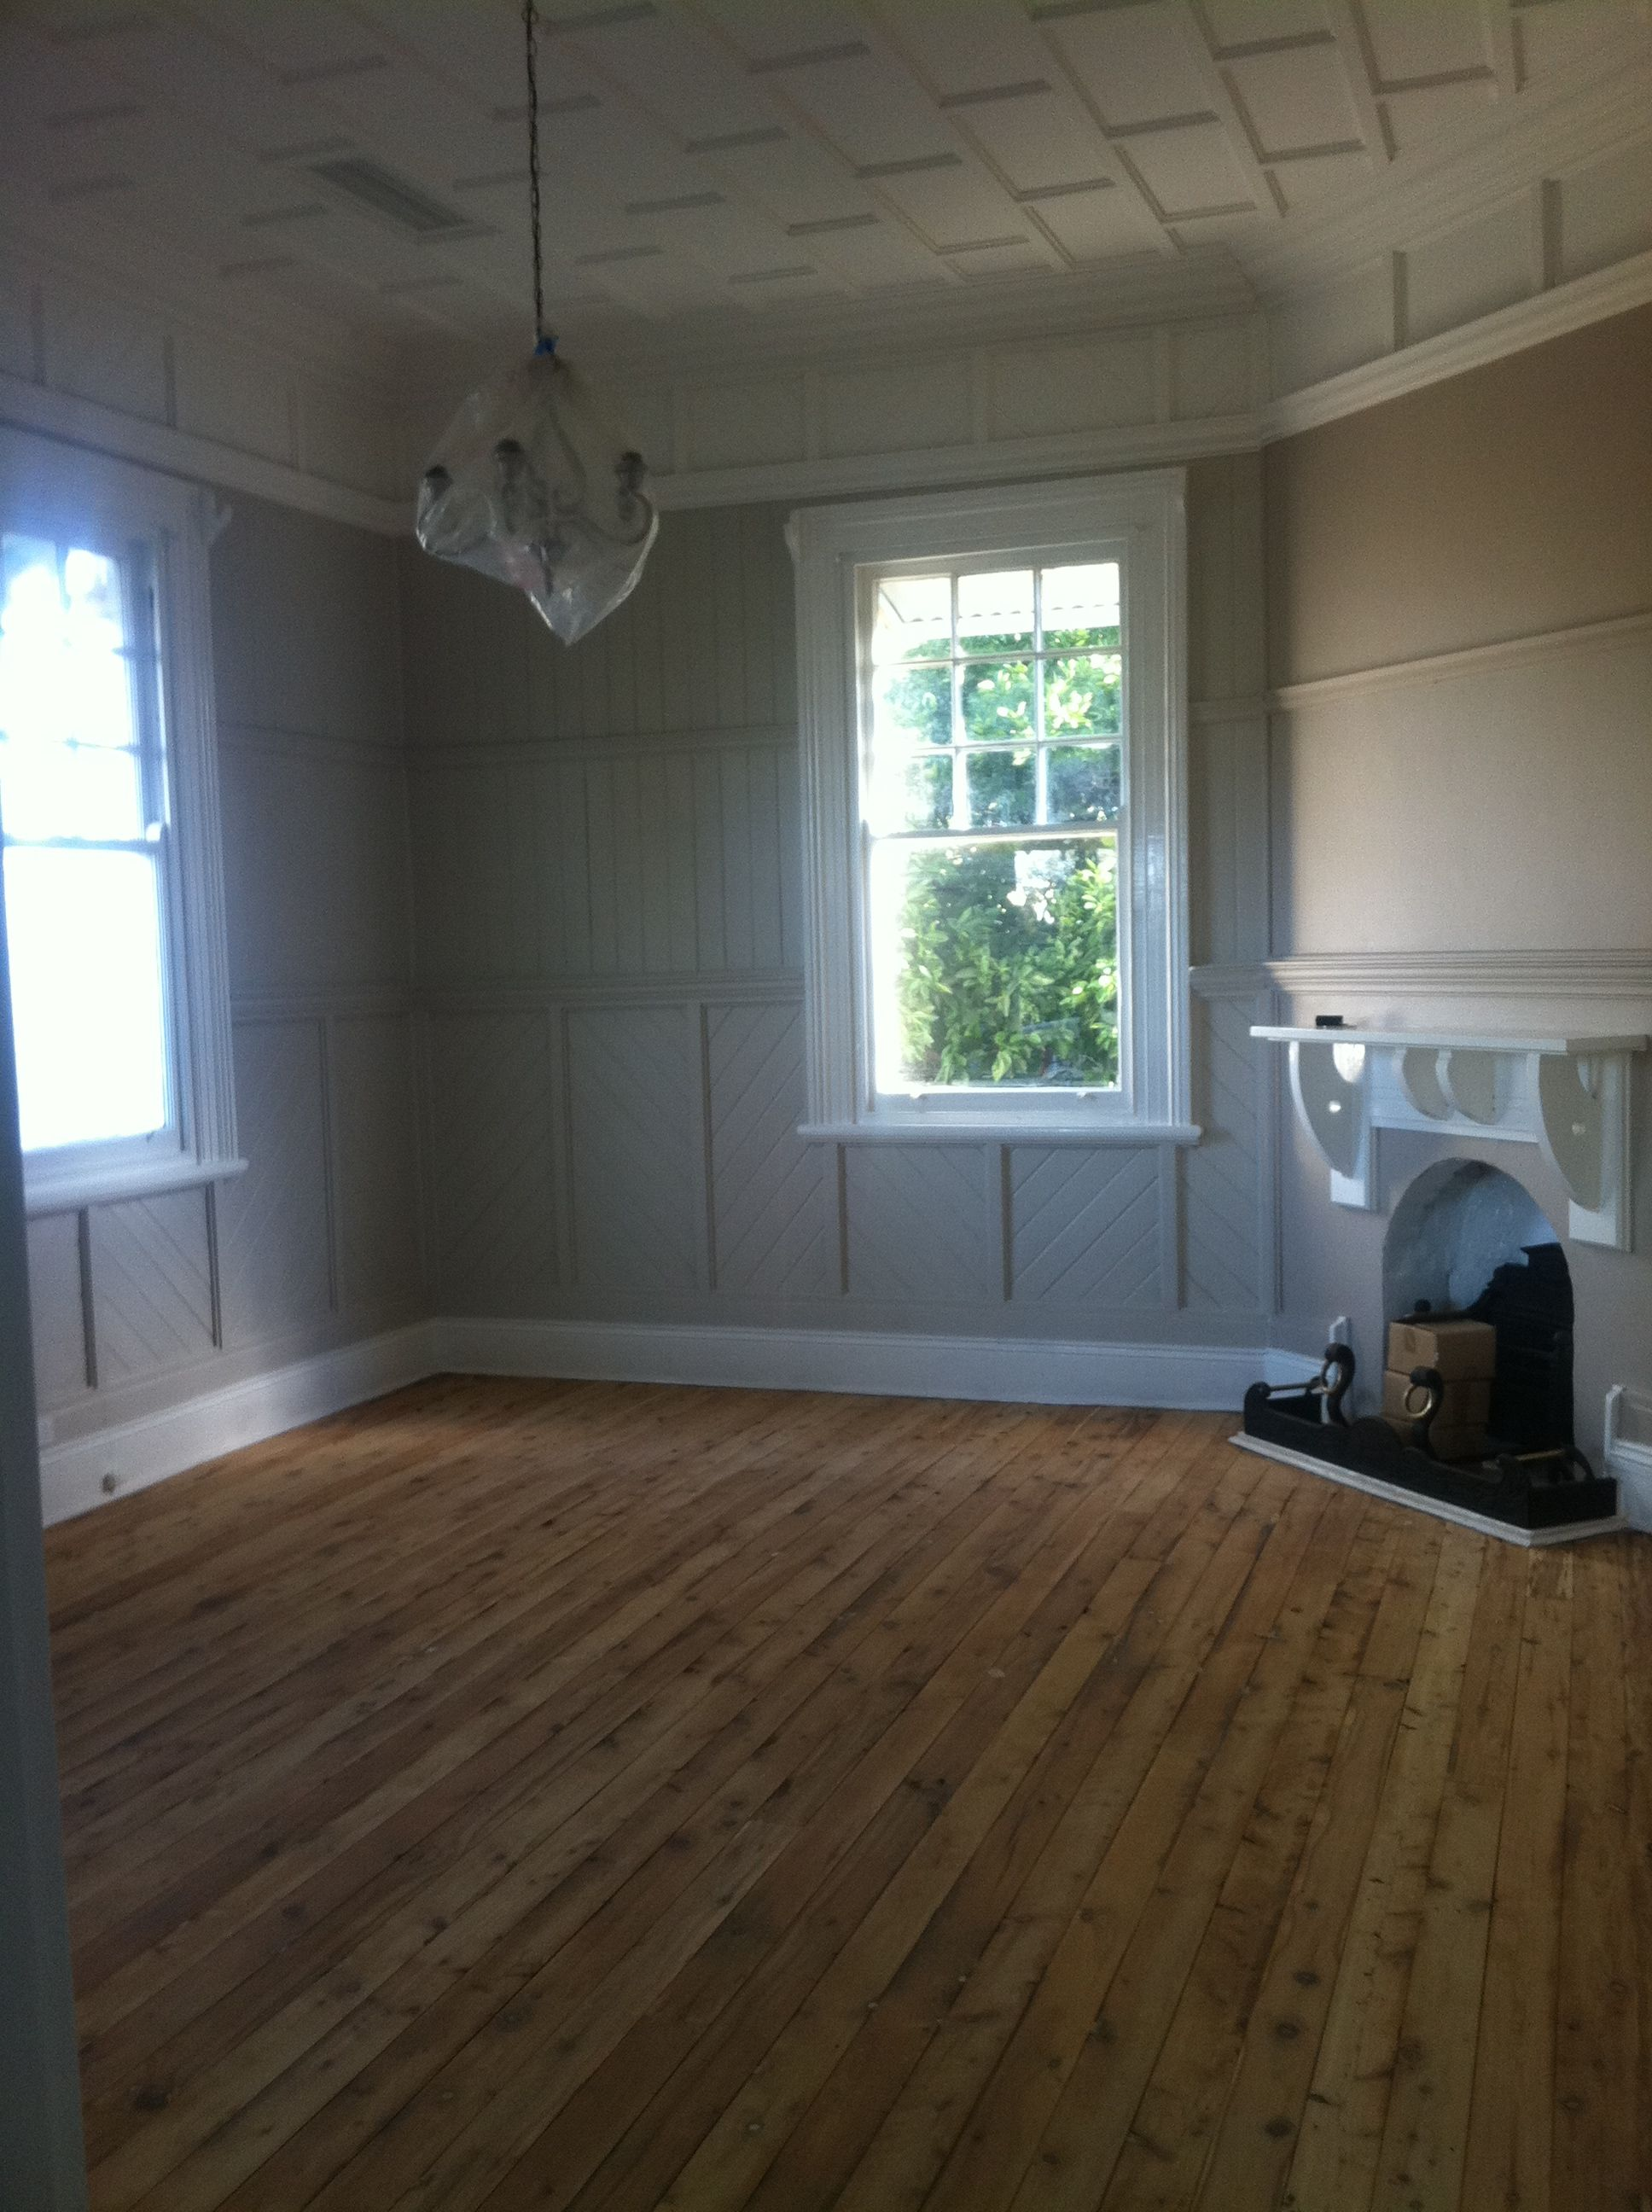 Living Room Cypress Pine Floors Now Sanded Awaiting Clear Gloss Coats Flooring Wood Floors How To Distress Wood